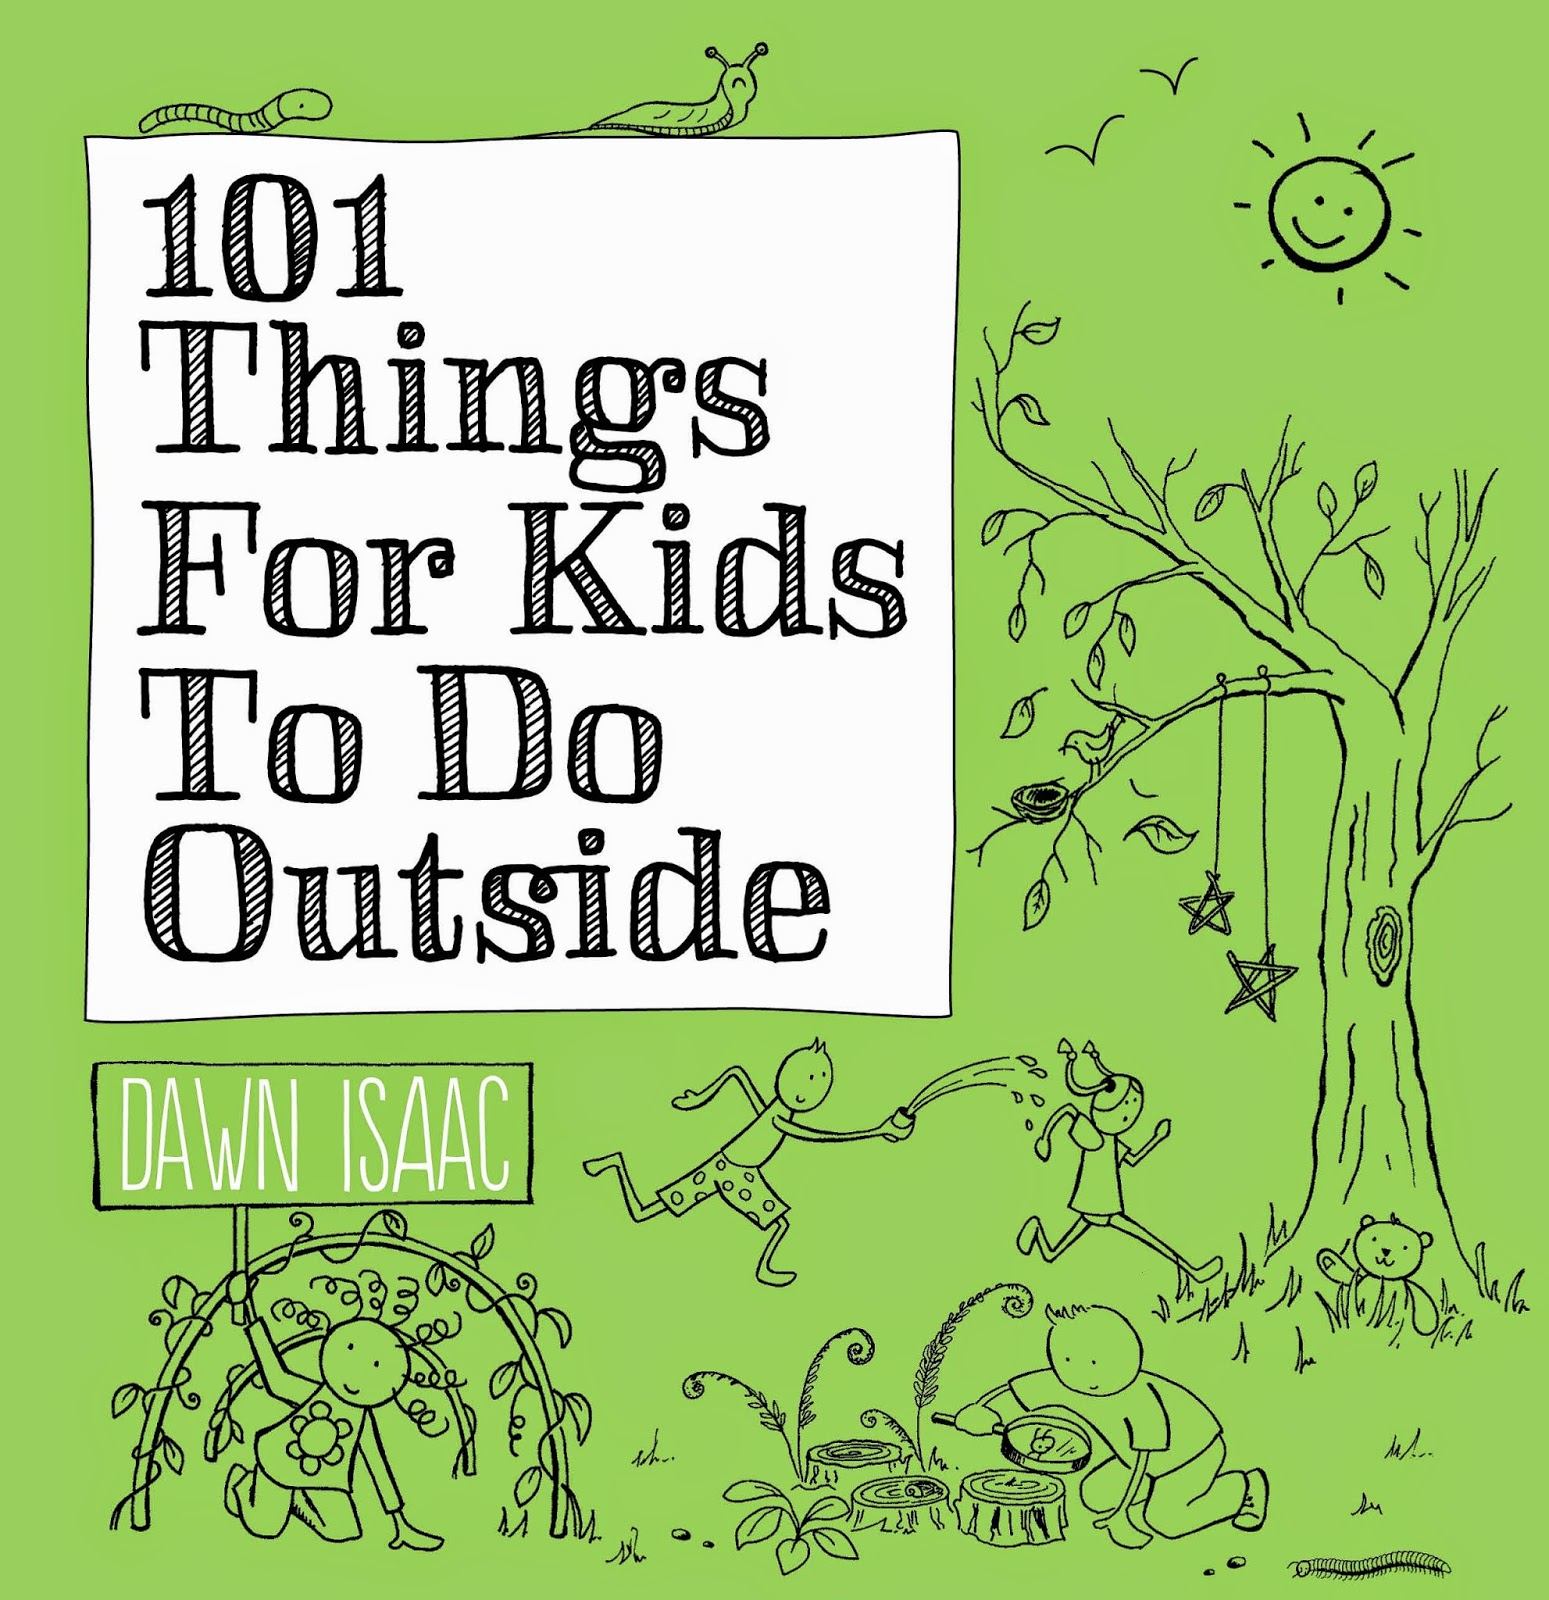 101_Things_for_Kids_to_do_Outdoors_front_cover.jpg